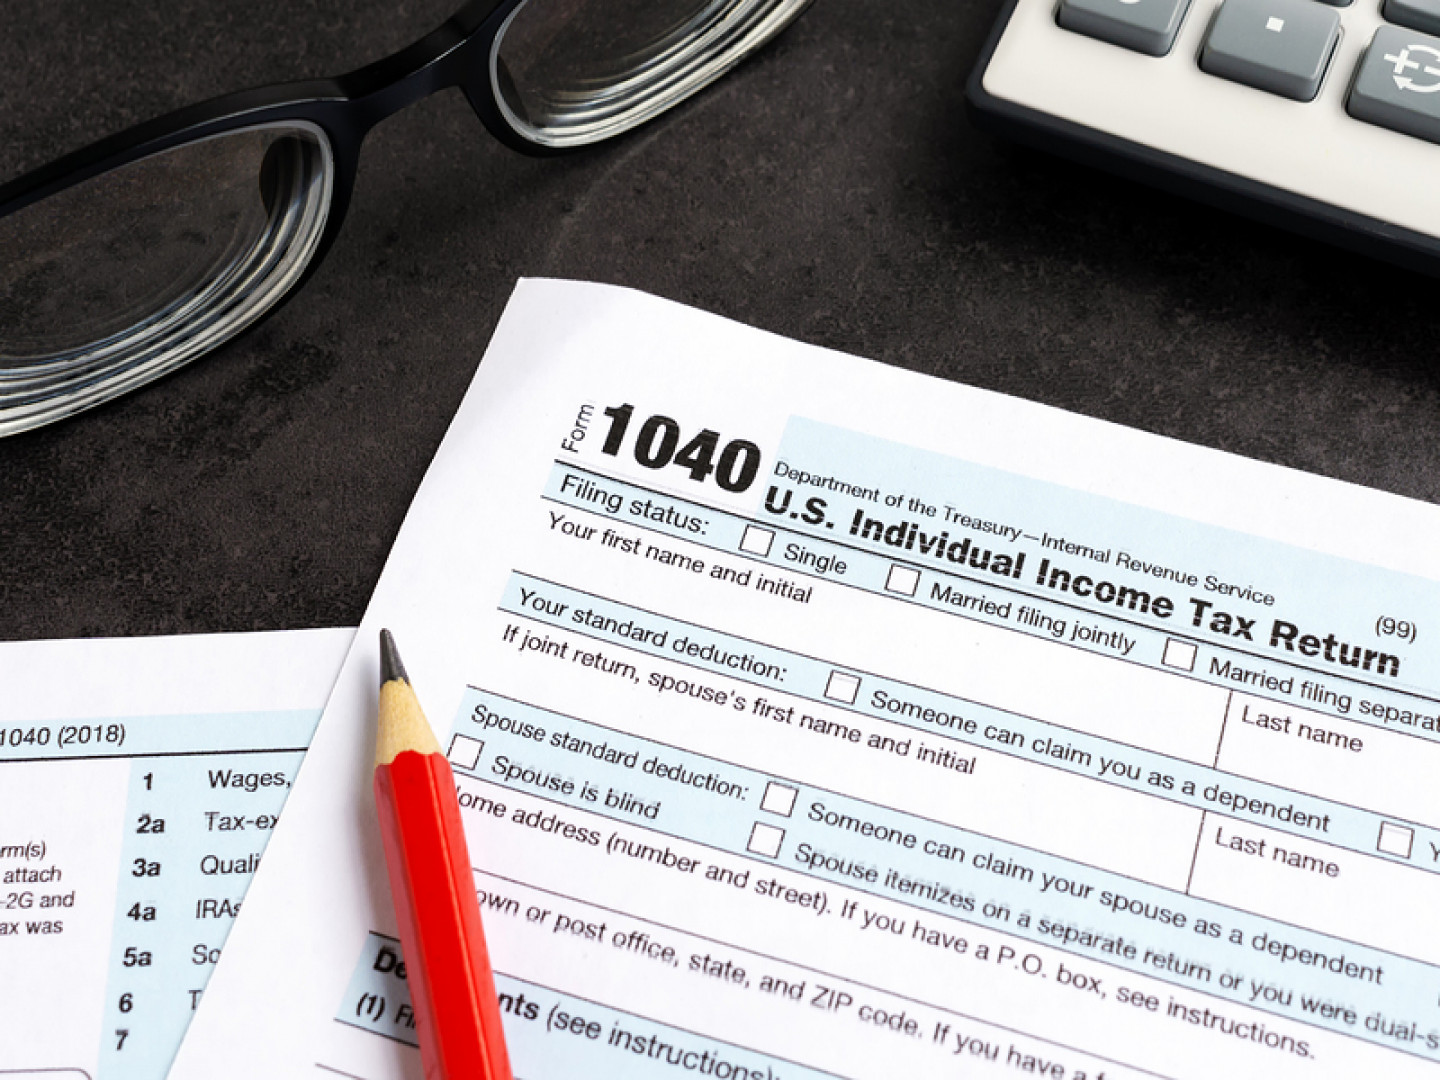 What to do if you're under an IRS audit